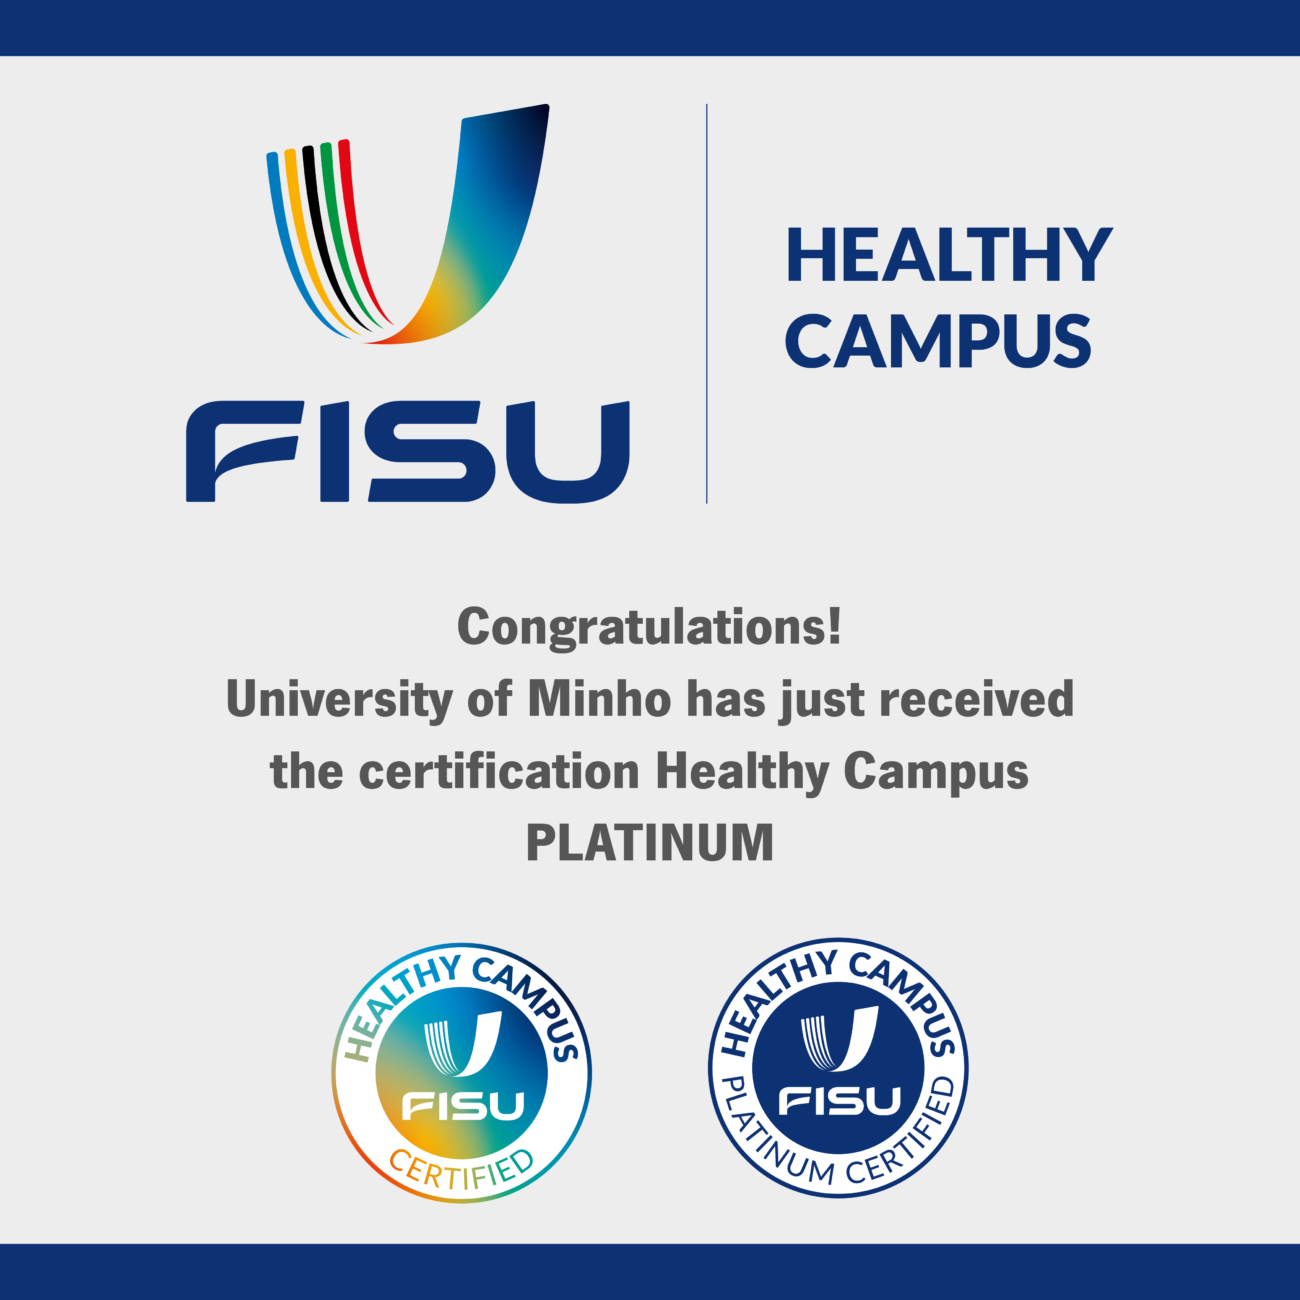 FISU Healthy Campus UMinho Certification